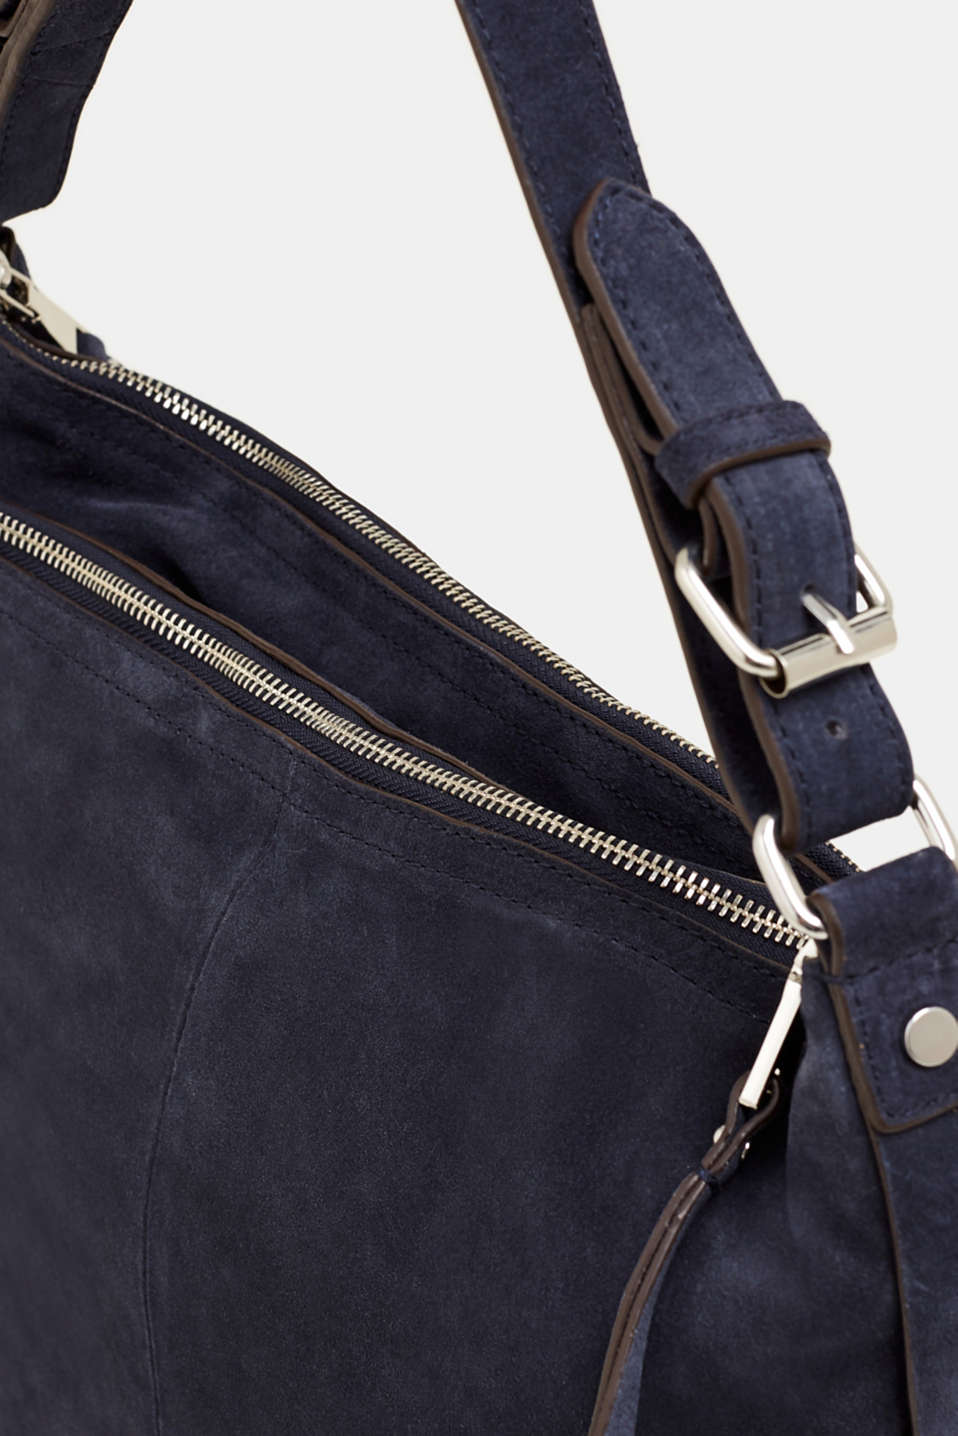 Leather hobo bag, NAVY, detail image number 3